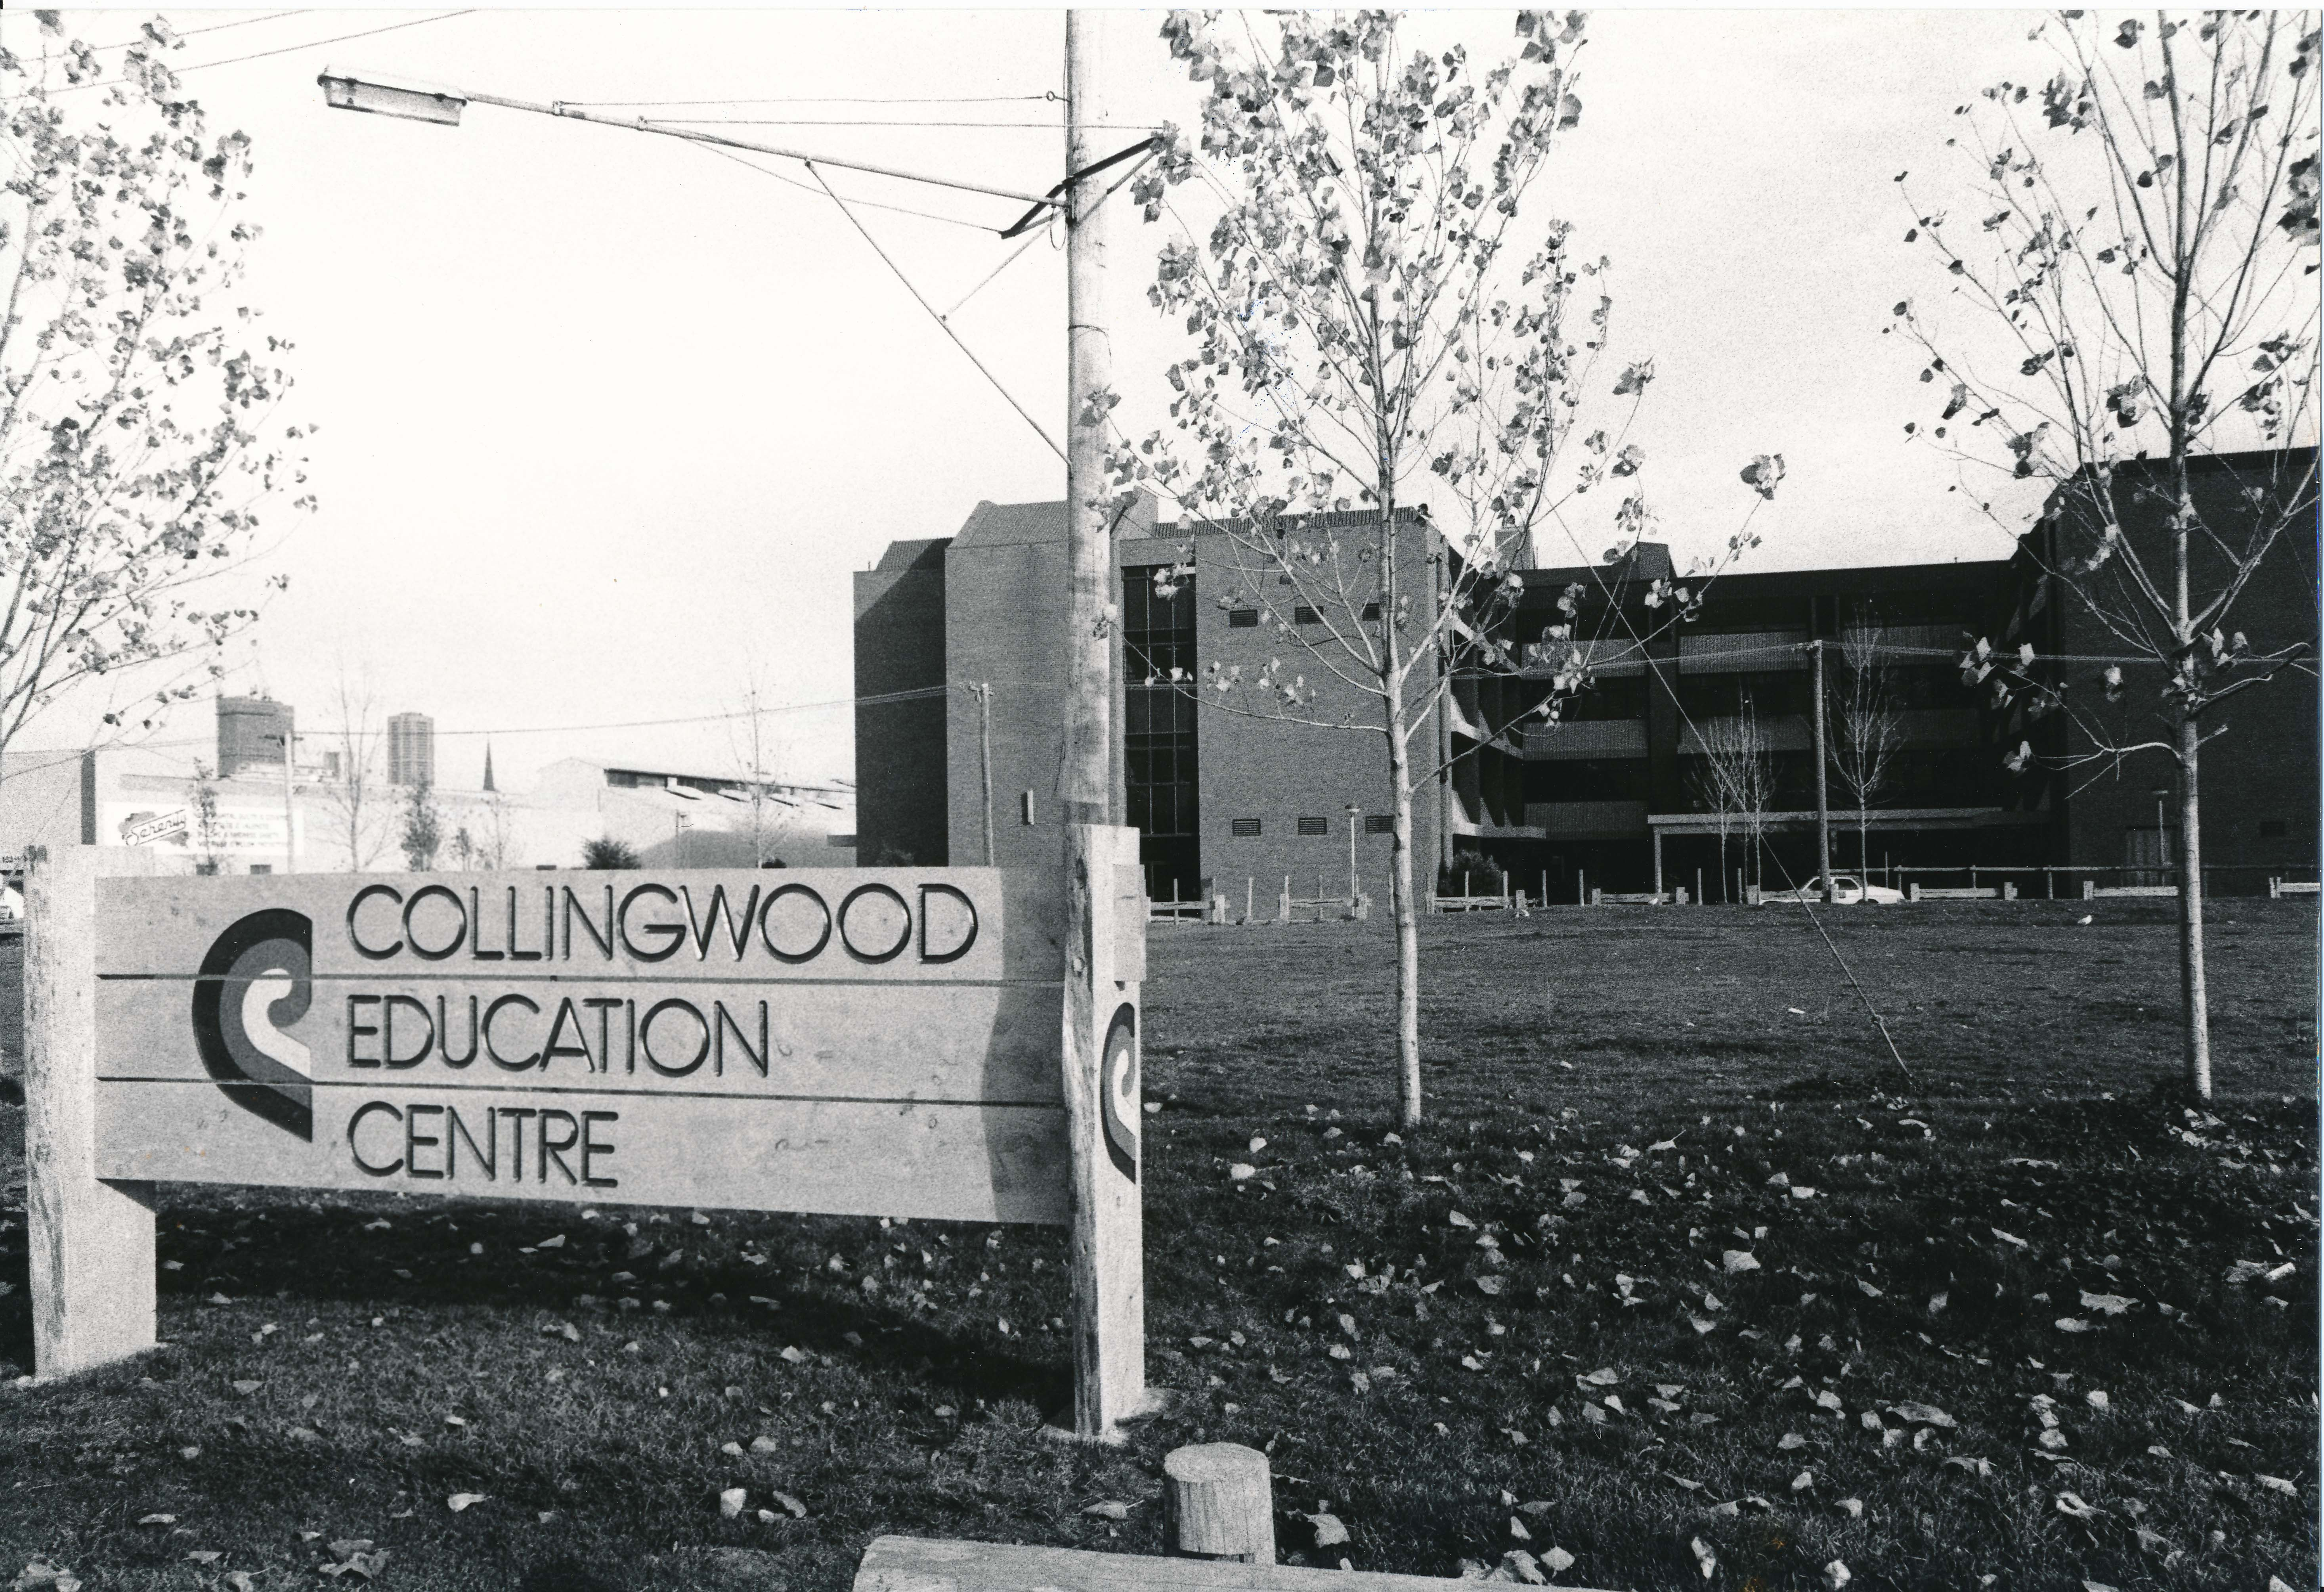 Collingwood Education Centre, 1981. Photographer unknown. Yarra Libraries, CL PIC 333.